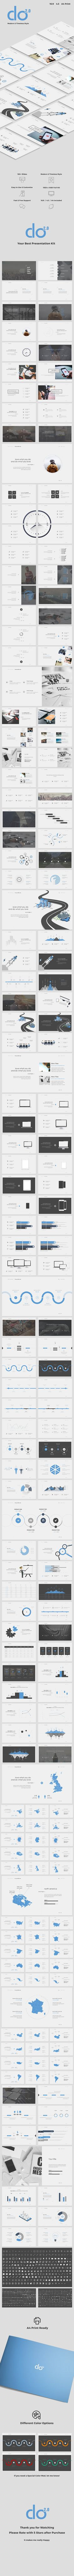 do 2.0 - Clean and Strong Google Slides Template. Download here: http://graphicriver.net/item/do-20-slides/16387007?ref=ksioks